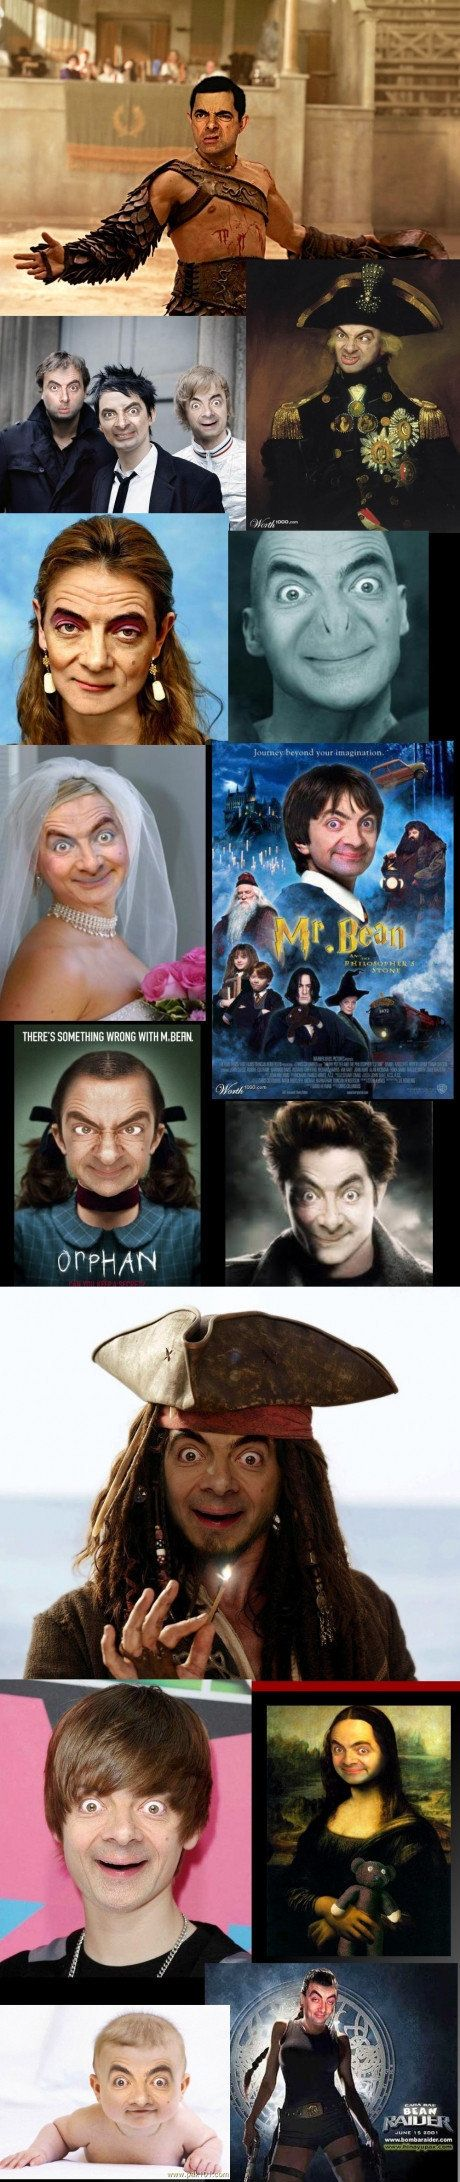 Mr. Bean face swap